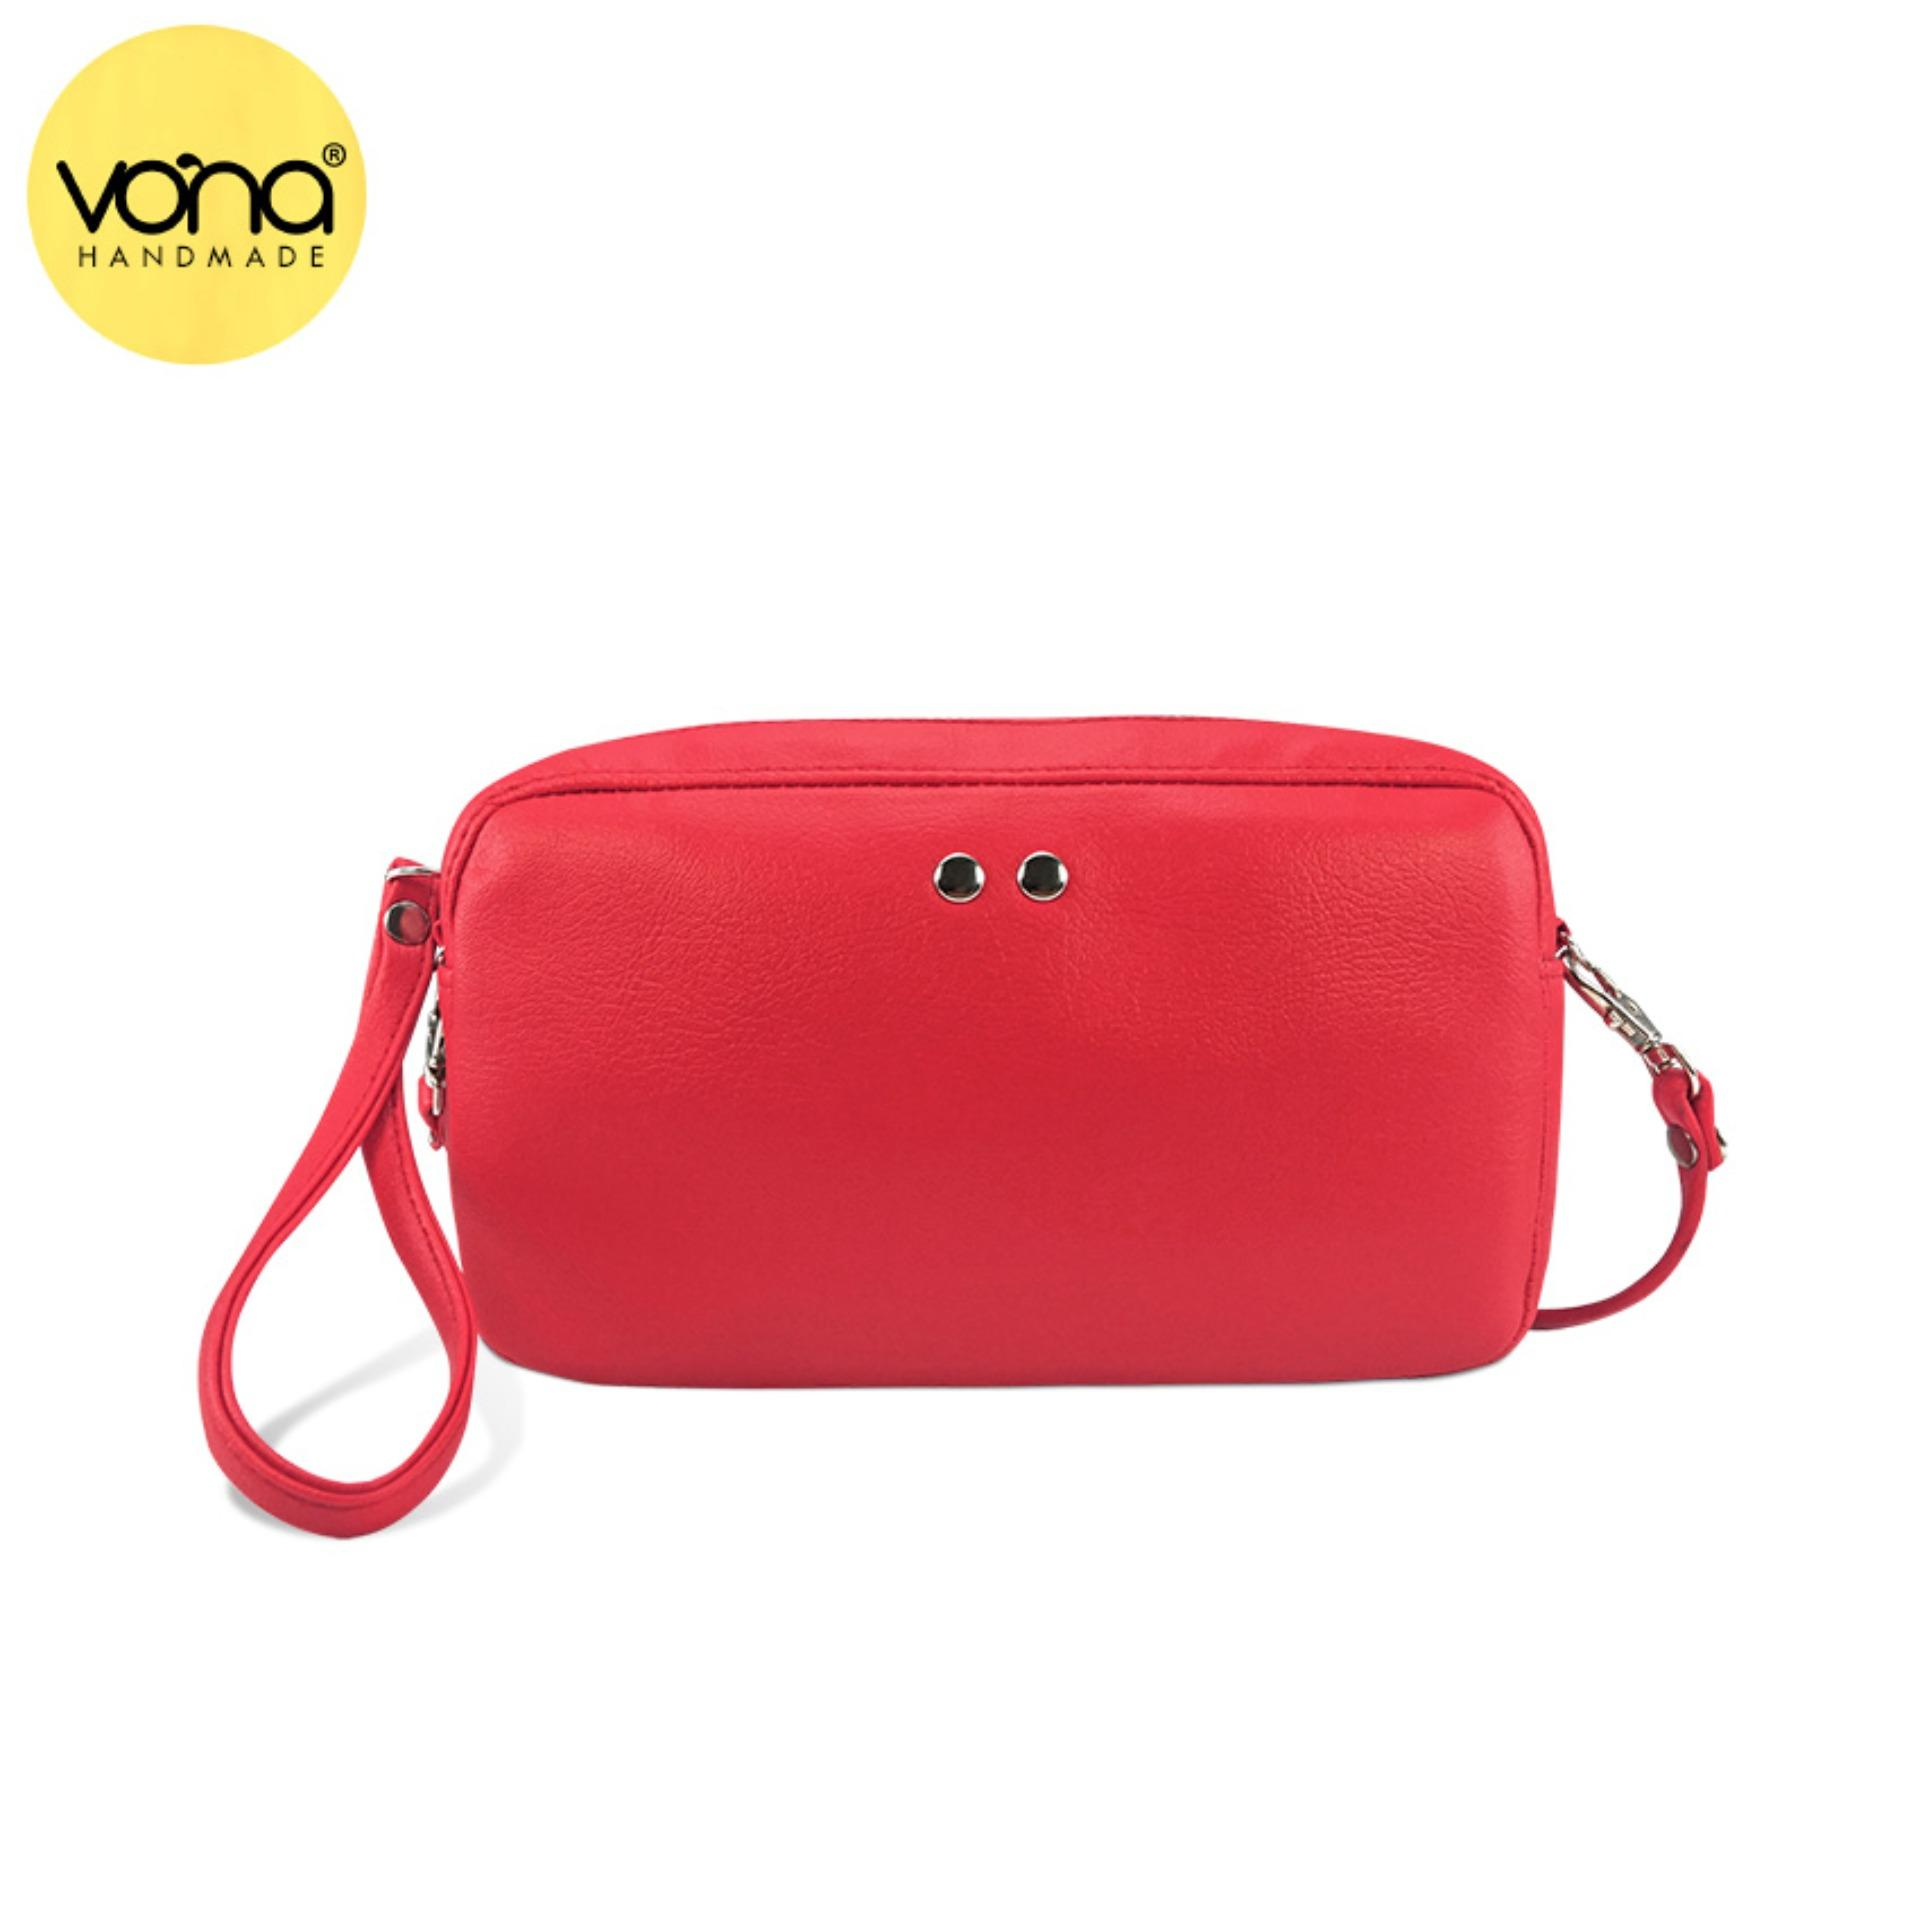 Katalog Vona Hopp Clutch Merah Clutch Sling Bag Mini Tas Selempang Bahu Ladies Pu Leather Vona Terbaru